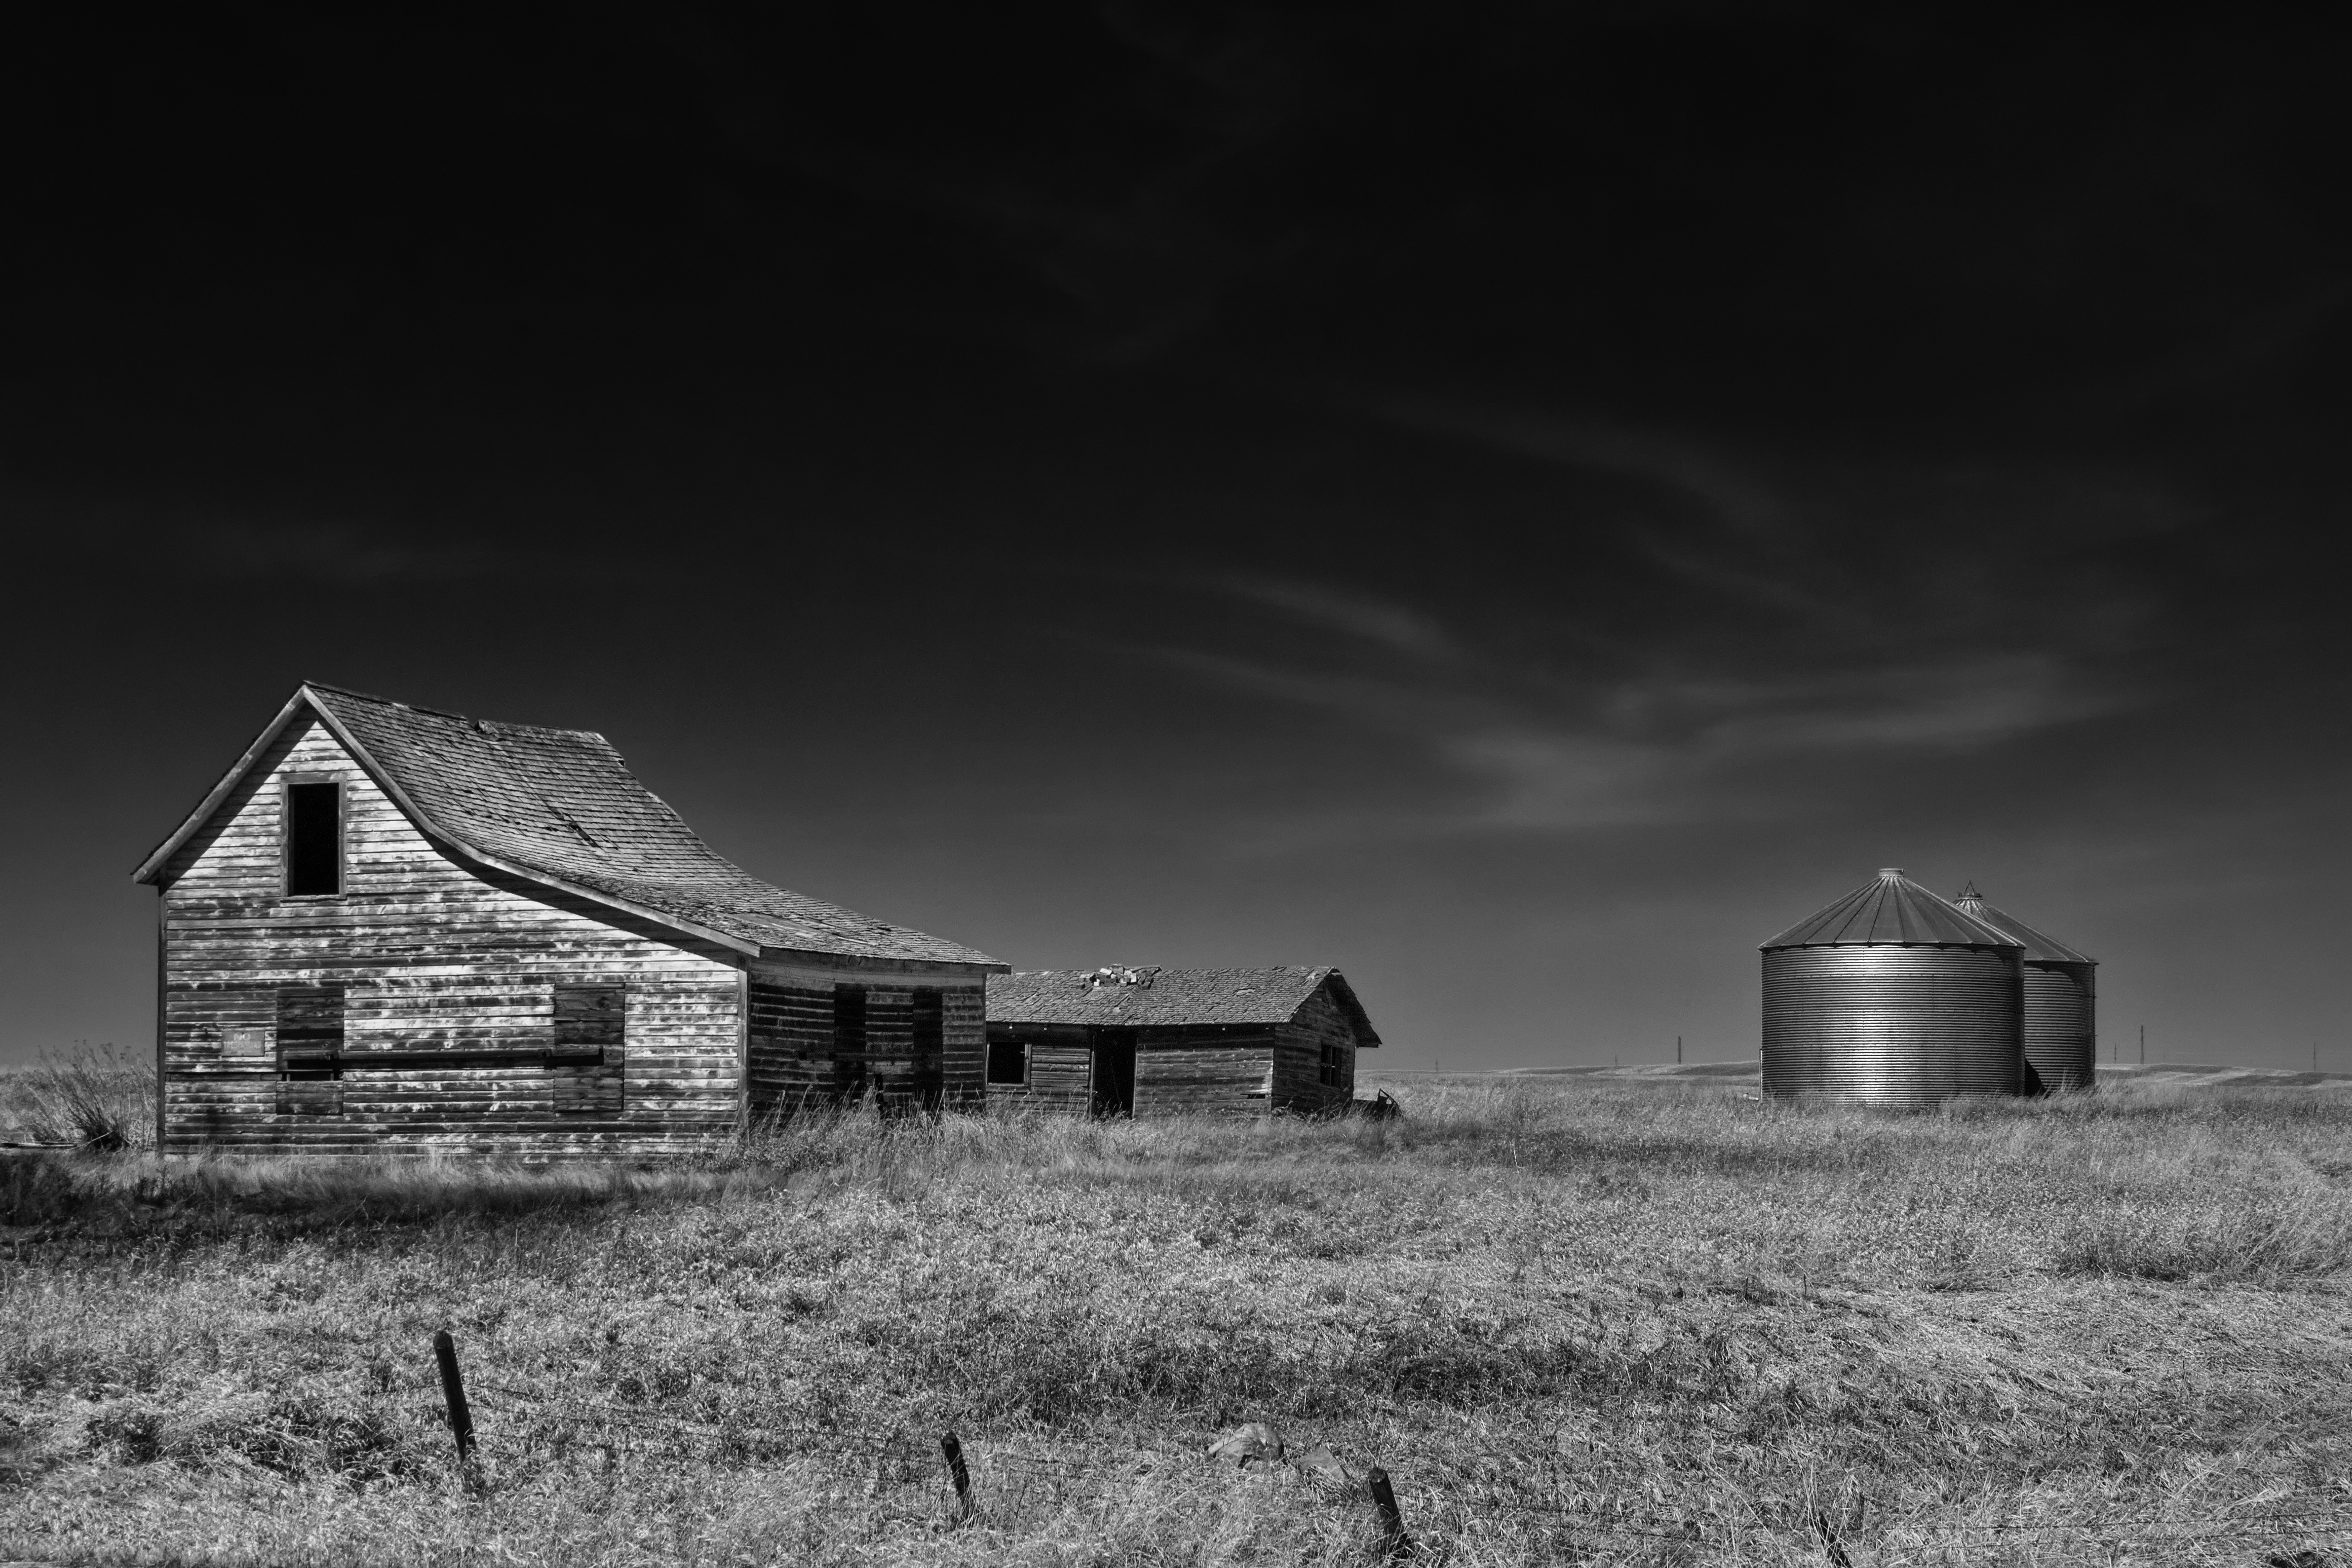 Farming Structures in Mono